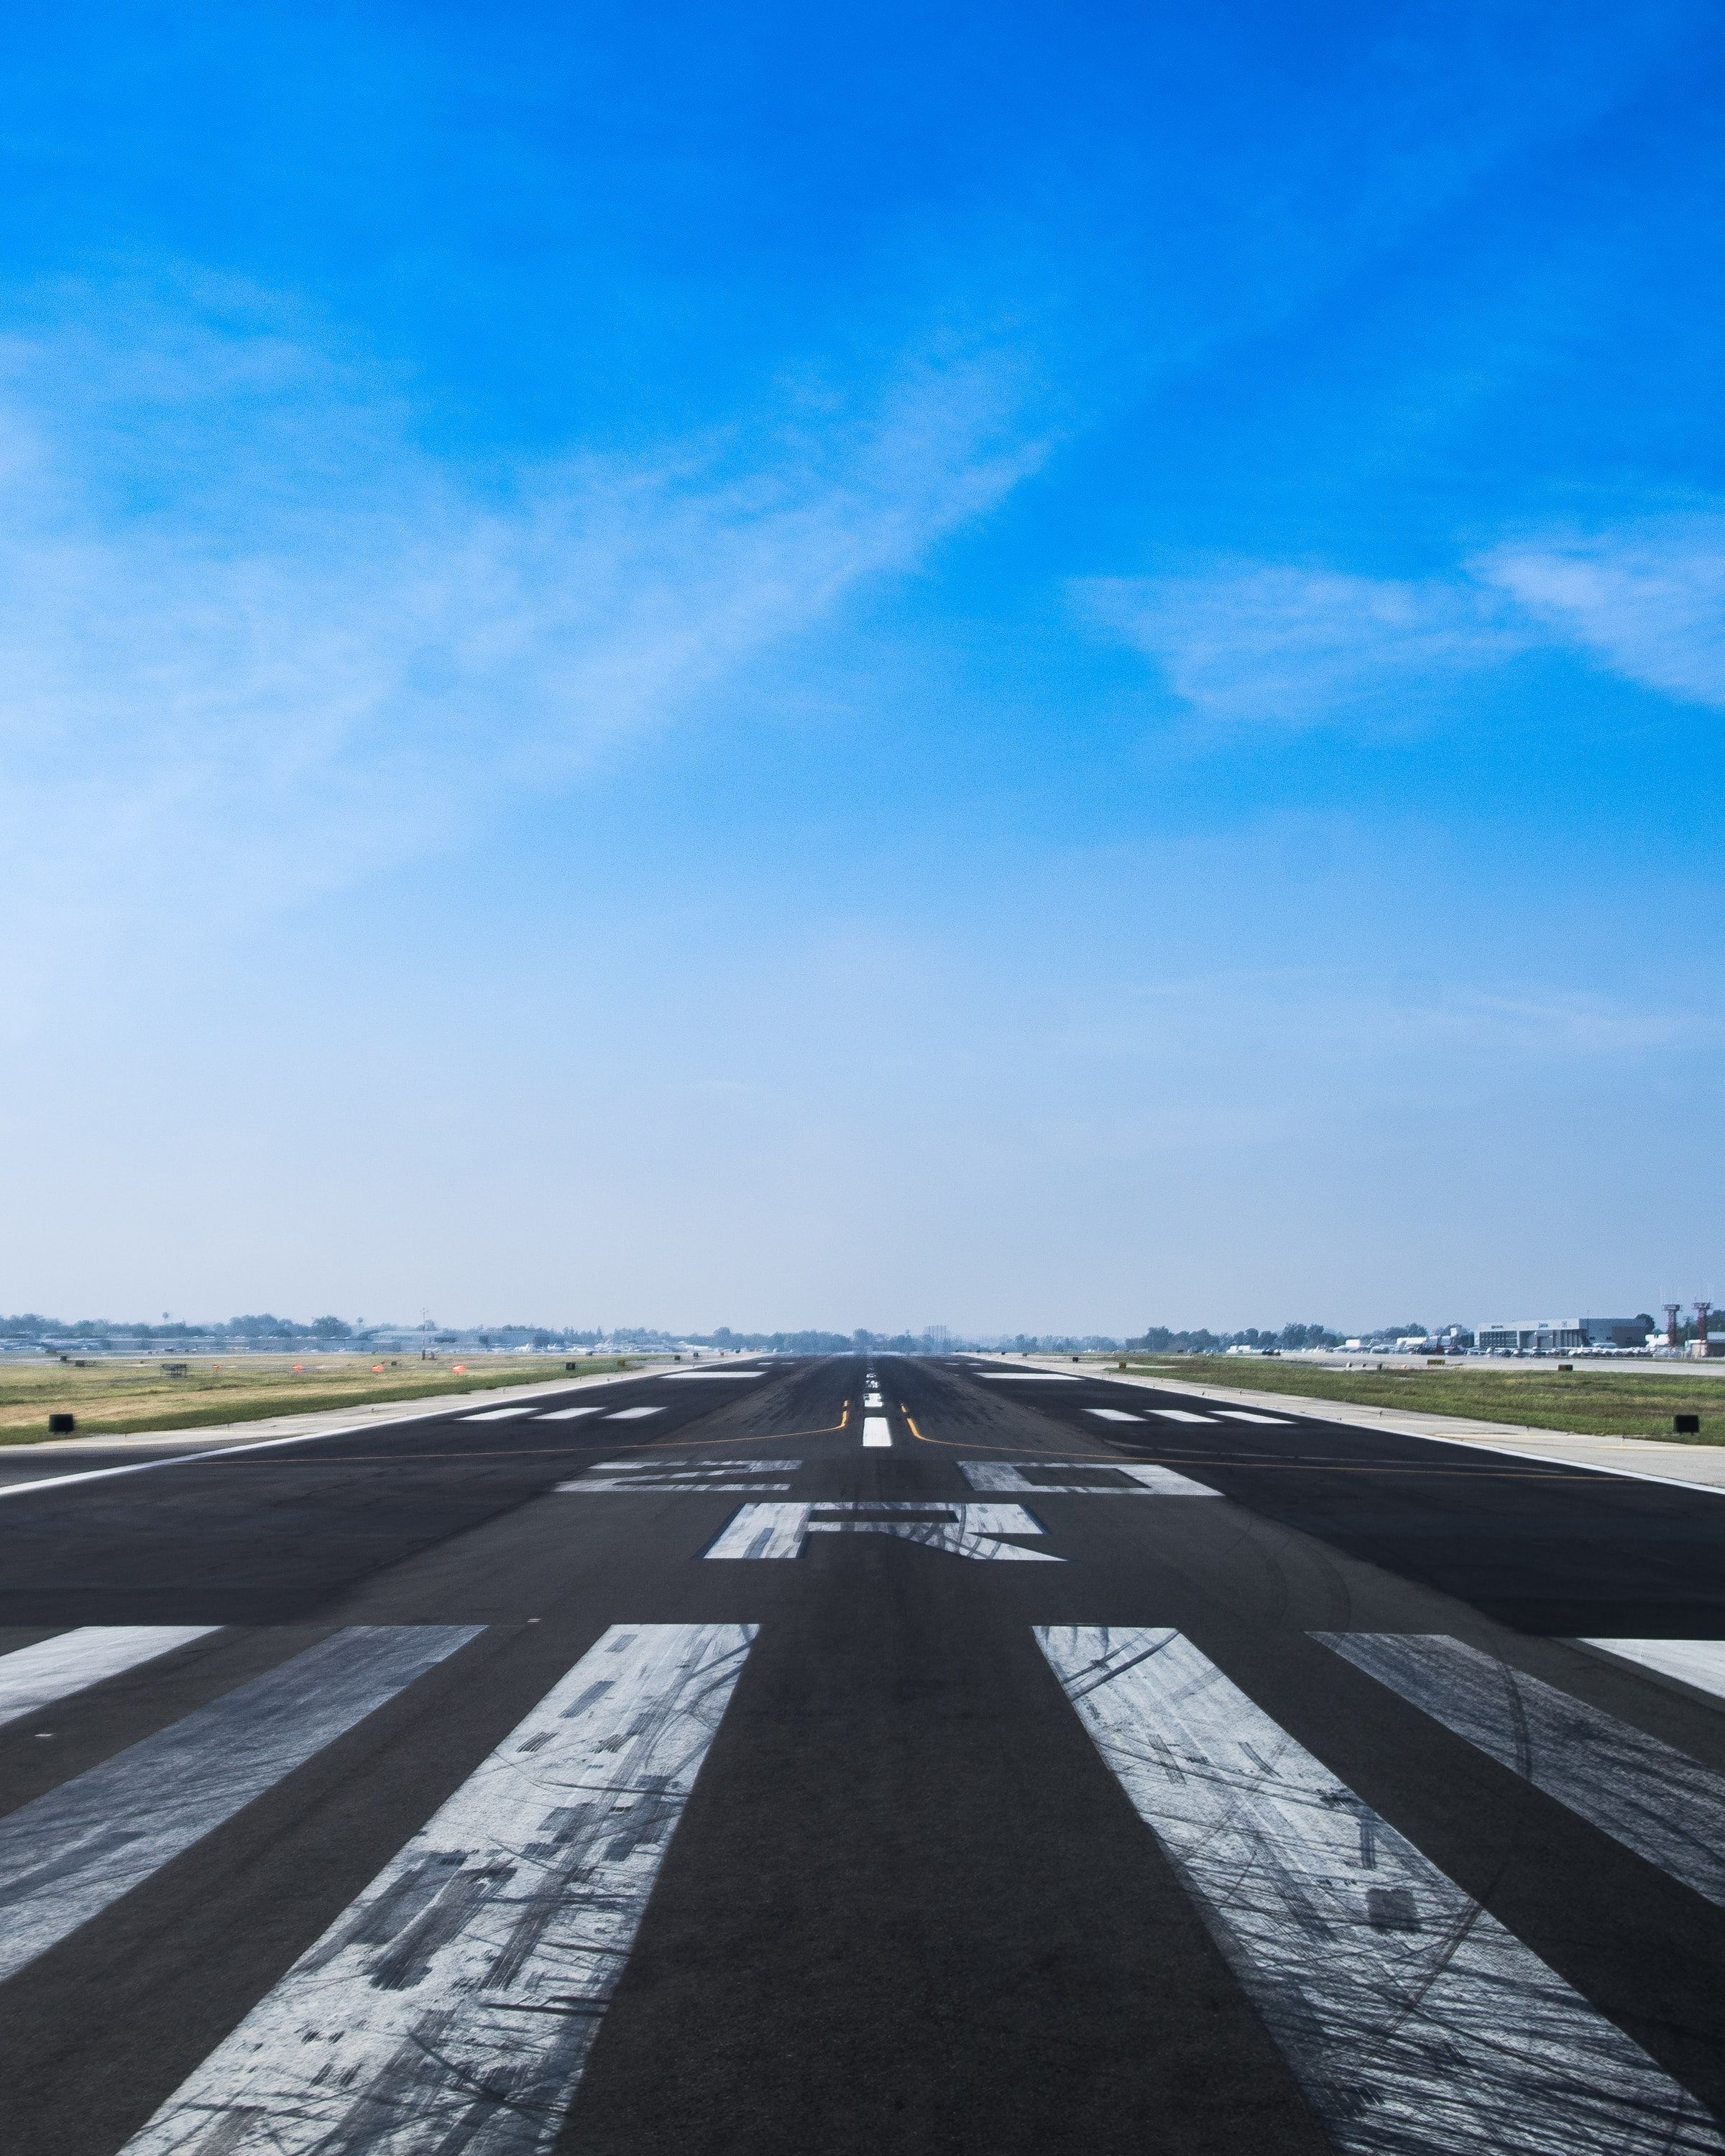 Photo of an airfield